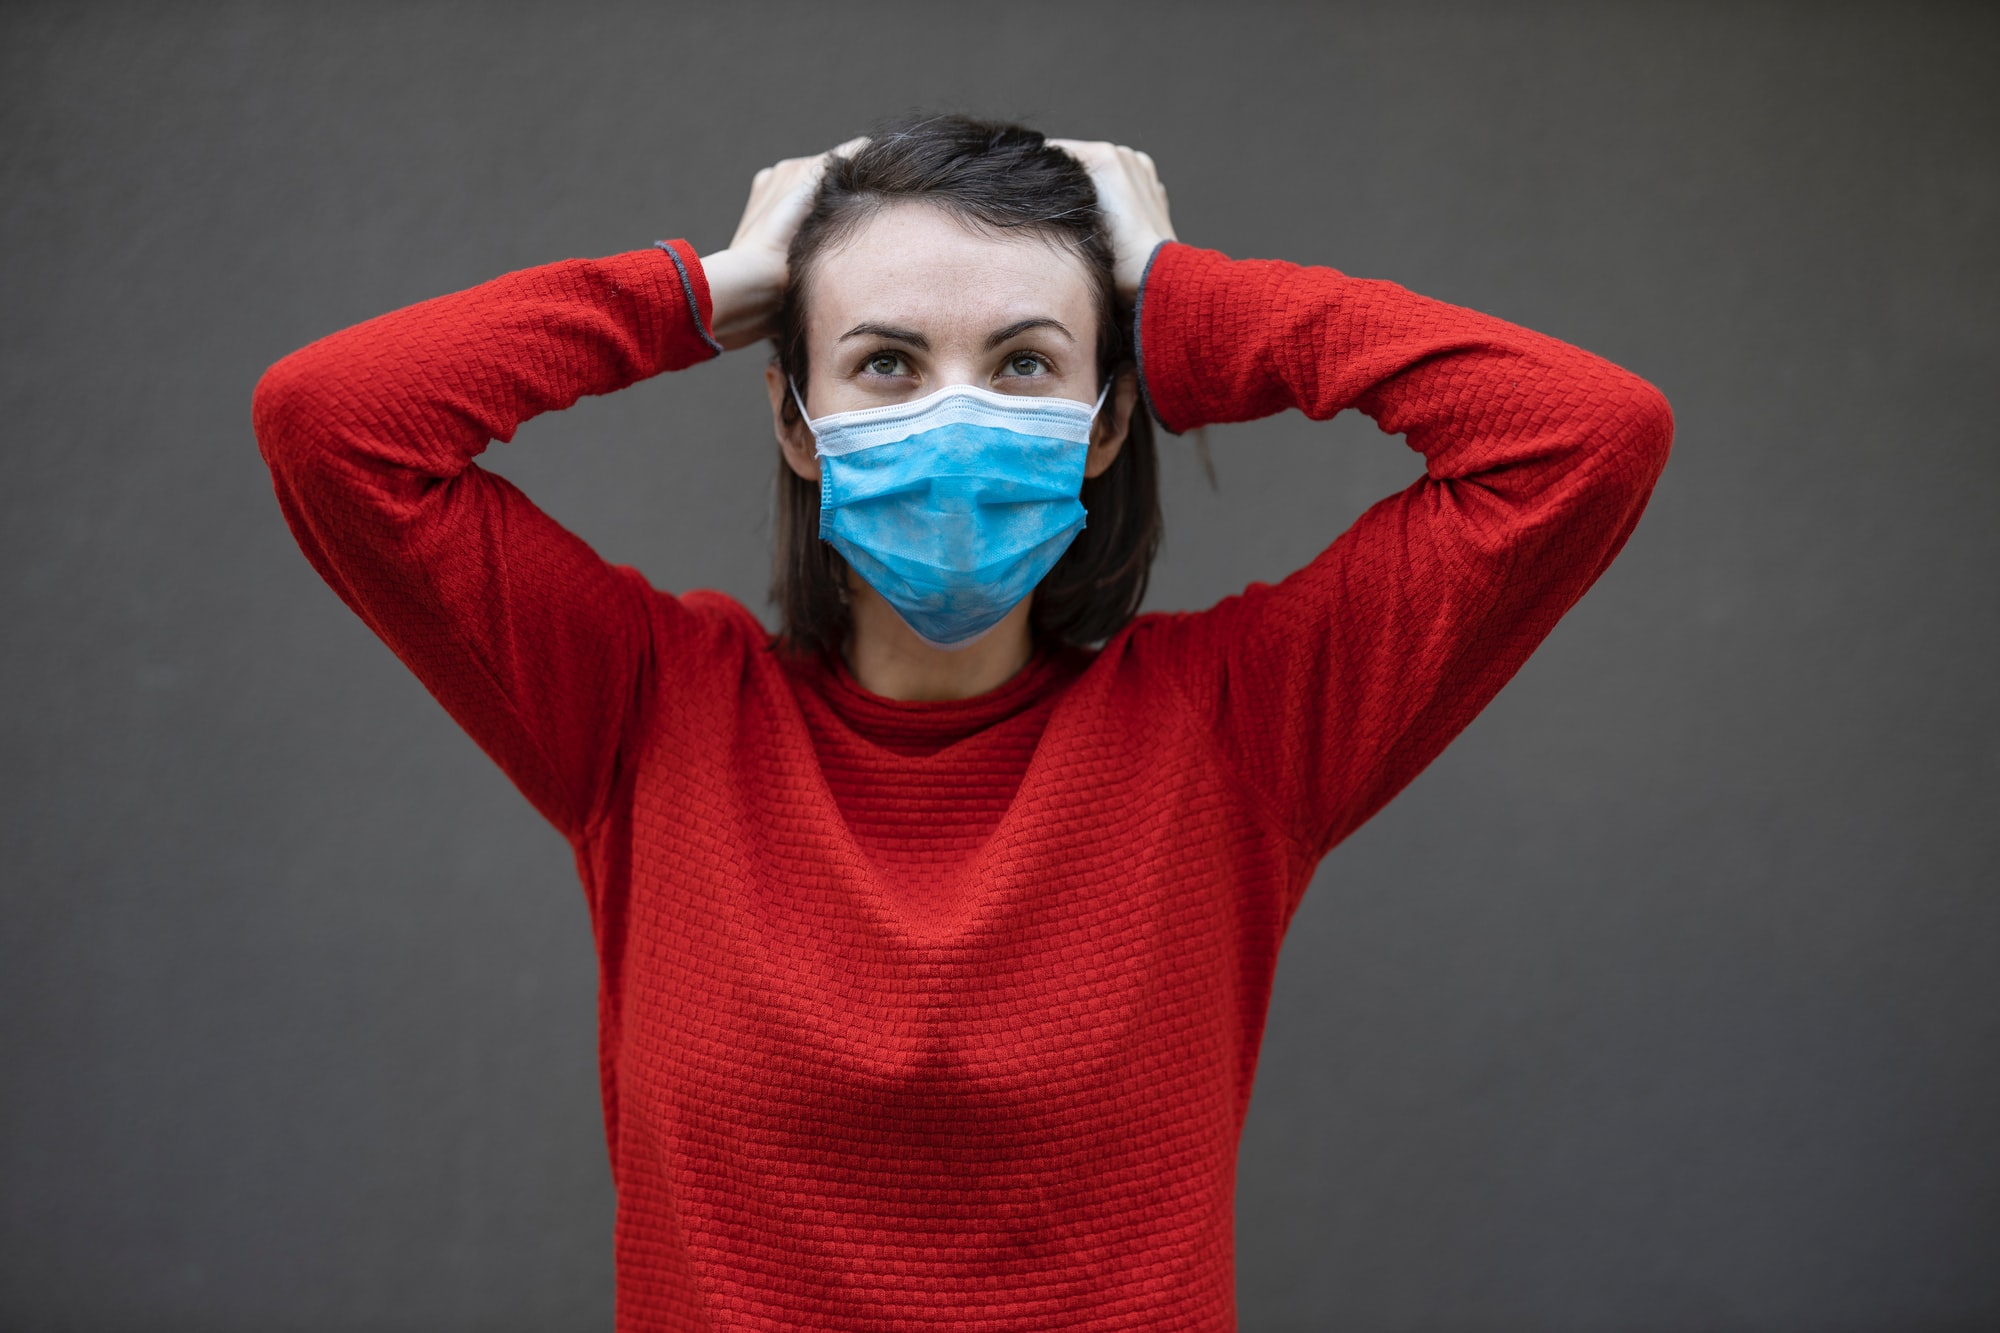 Woman wearing face mask during coronavirus outbreak